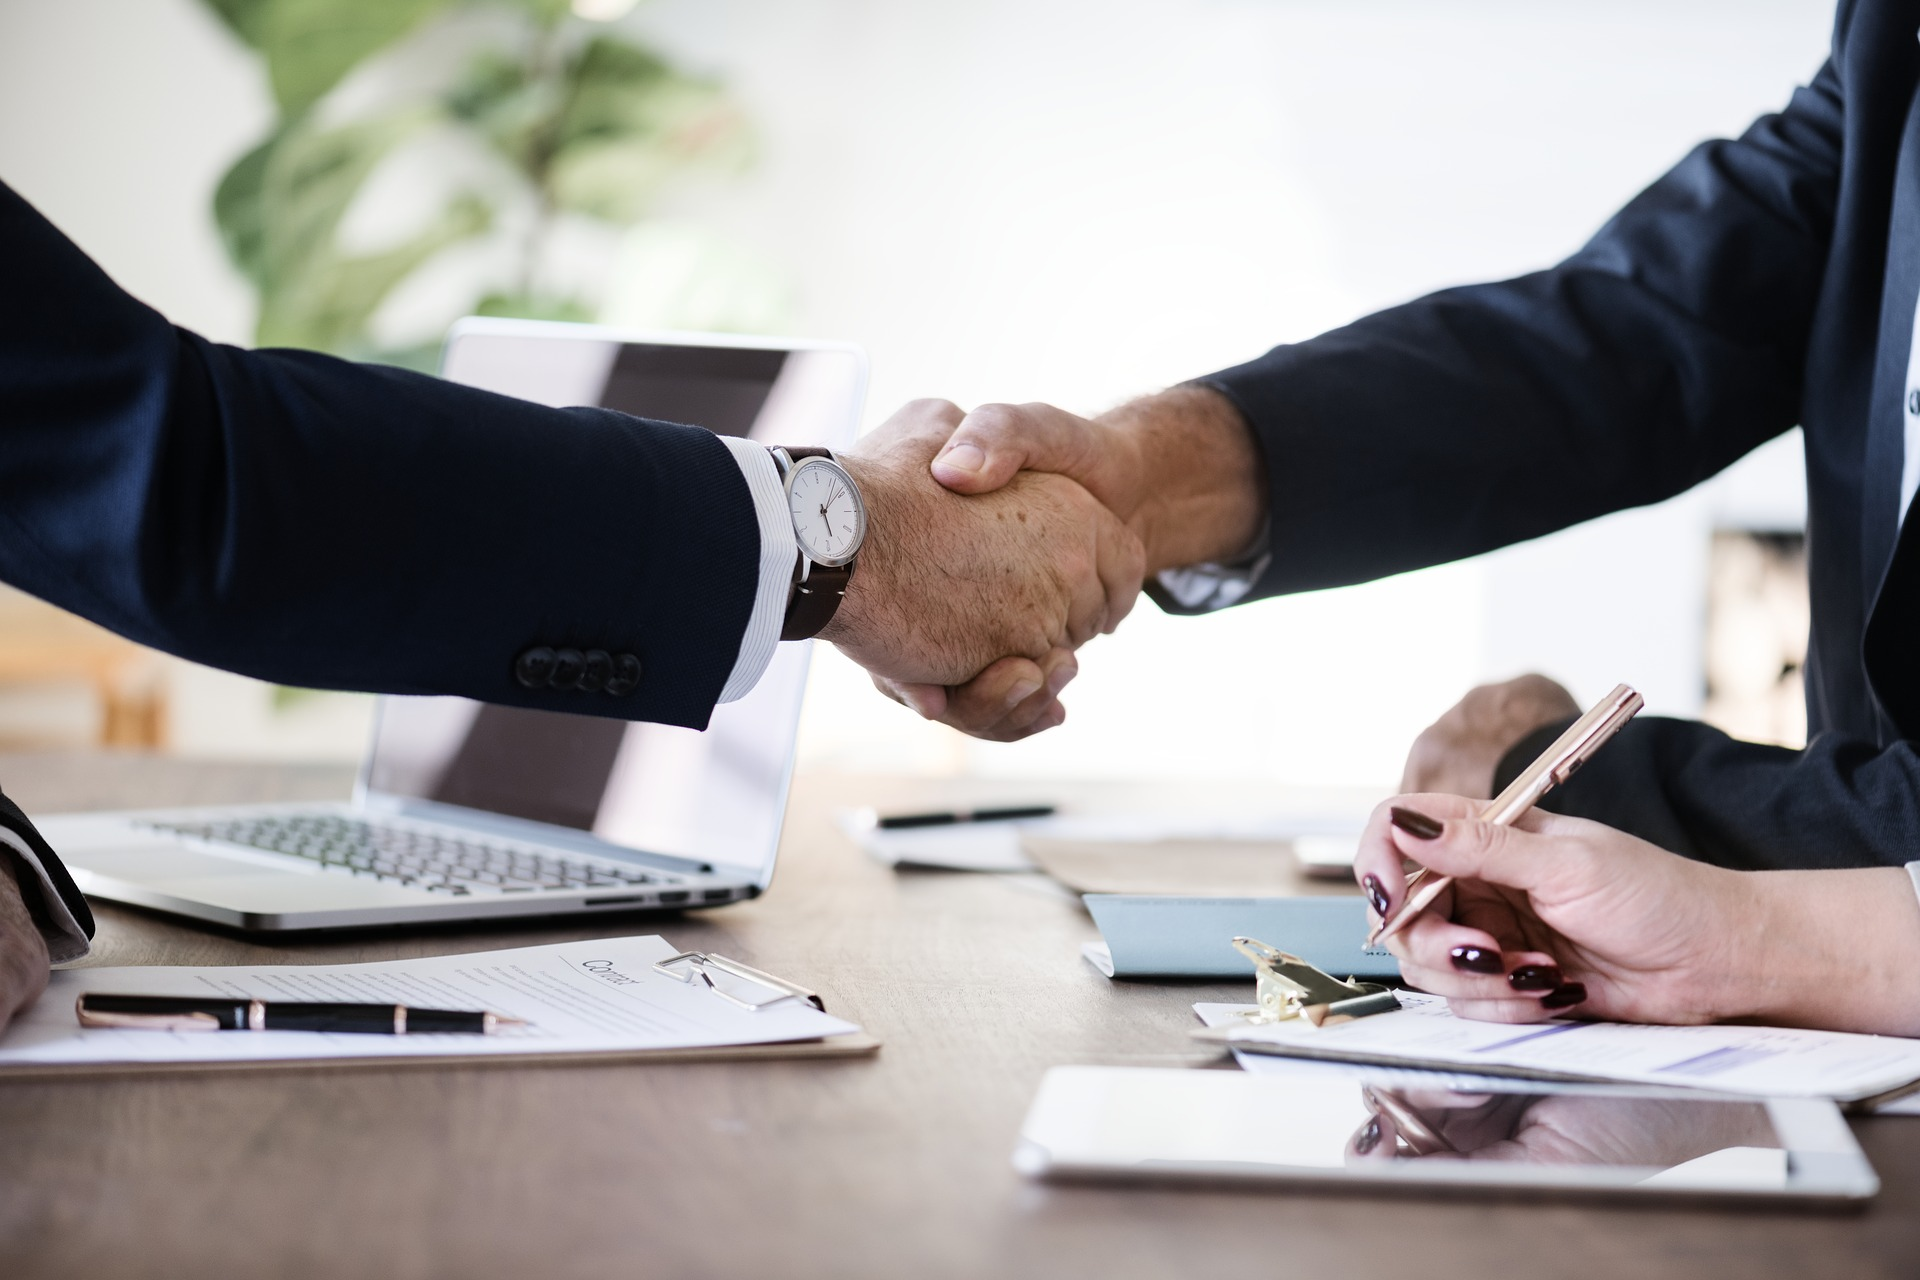 business people hands shaking over table